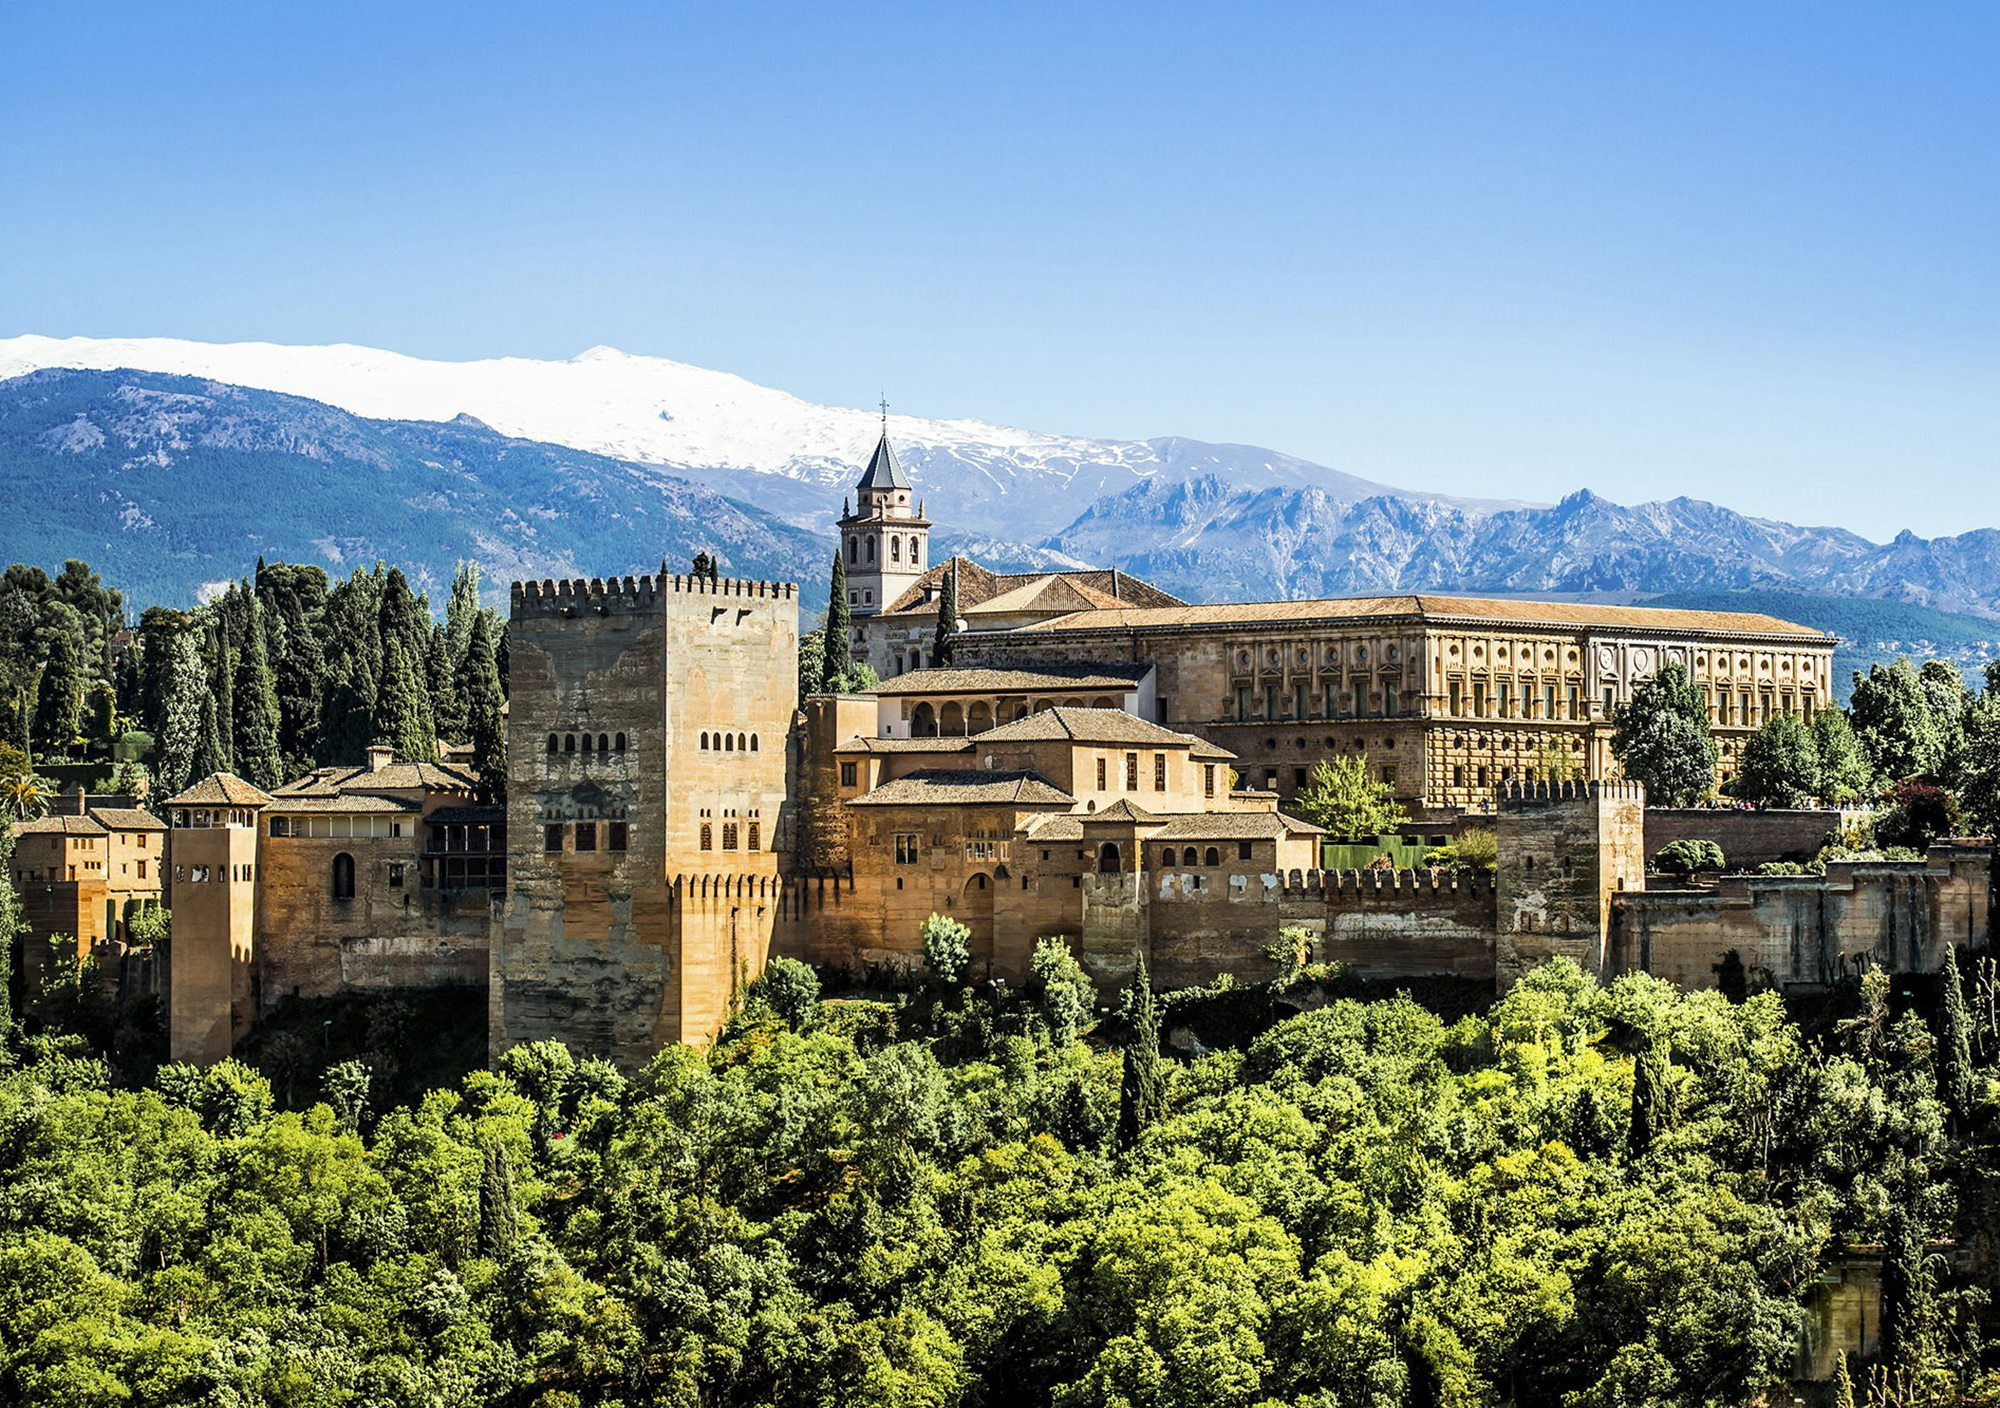 Guided tour semiprivada guided tour to the Alhambra and Granada with trasalados transport tickets tickets nazaries palaces from the Costa del Sol Malaga Torremolinos Benalmádena Marbella Fuengirola Mijas Elviria Puerto Banús Estepona